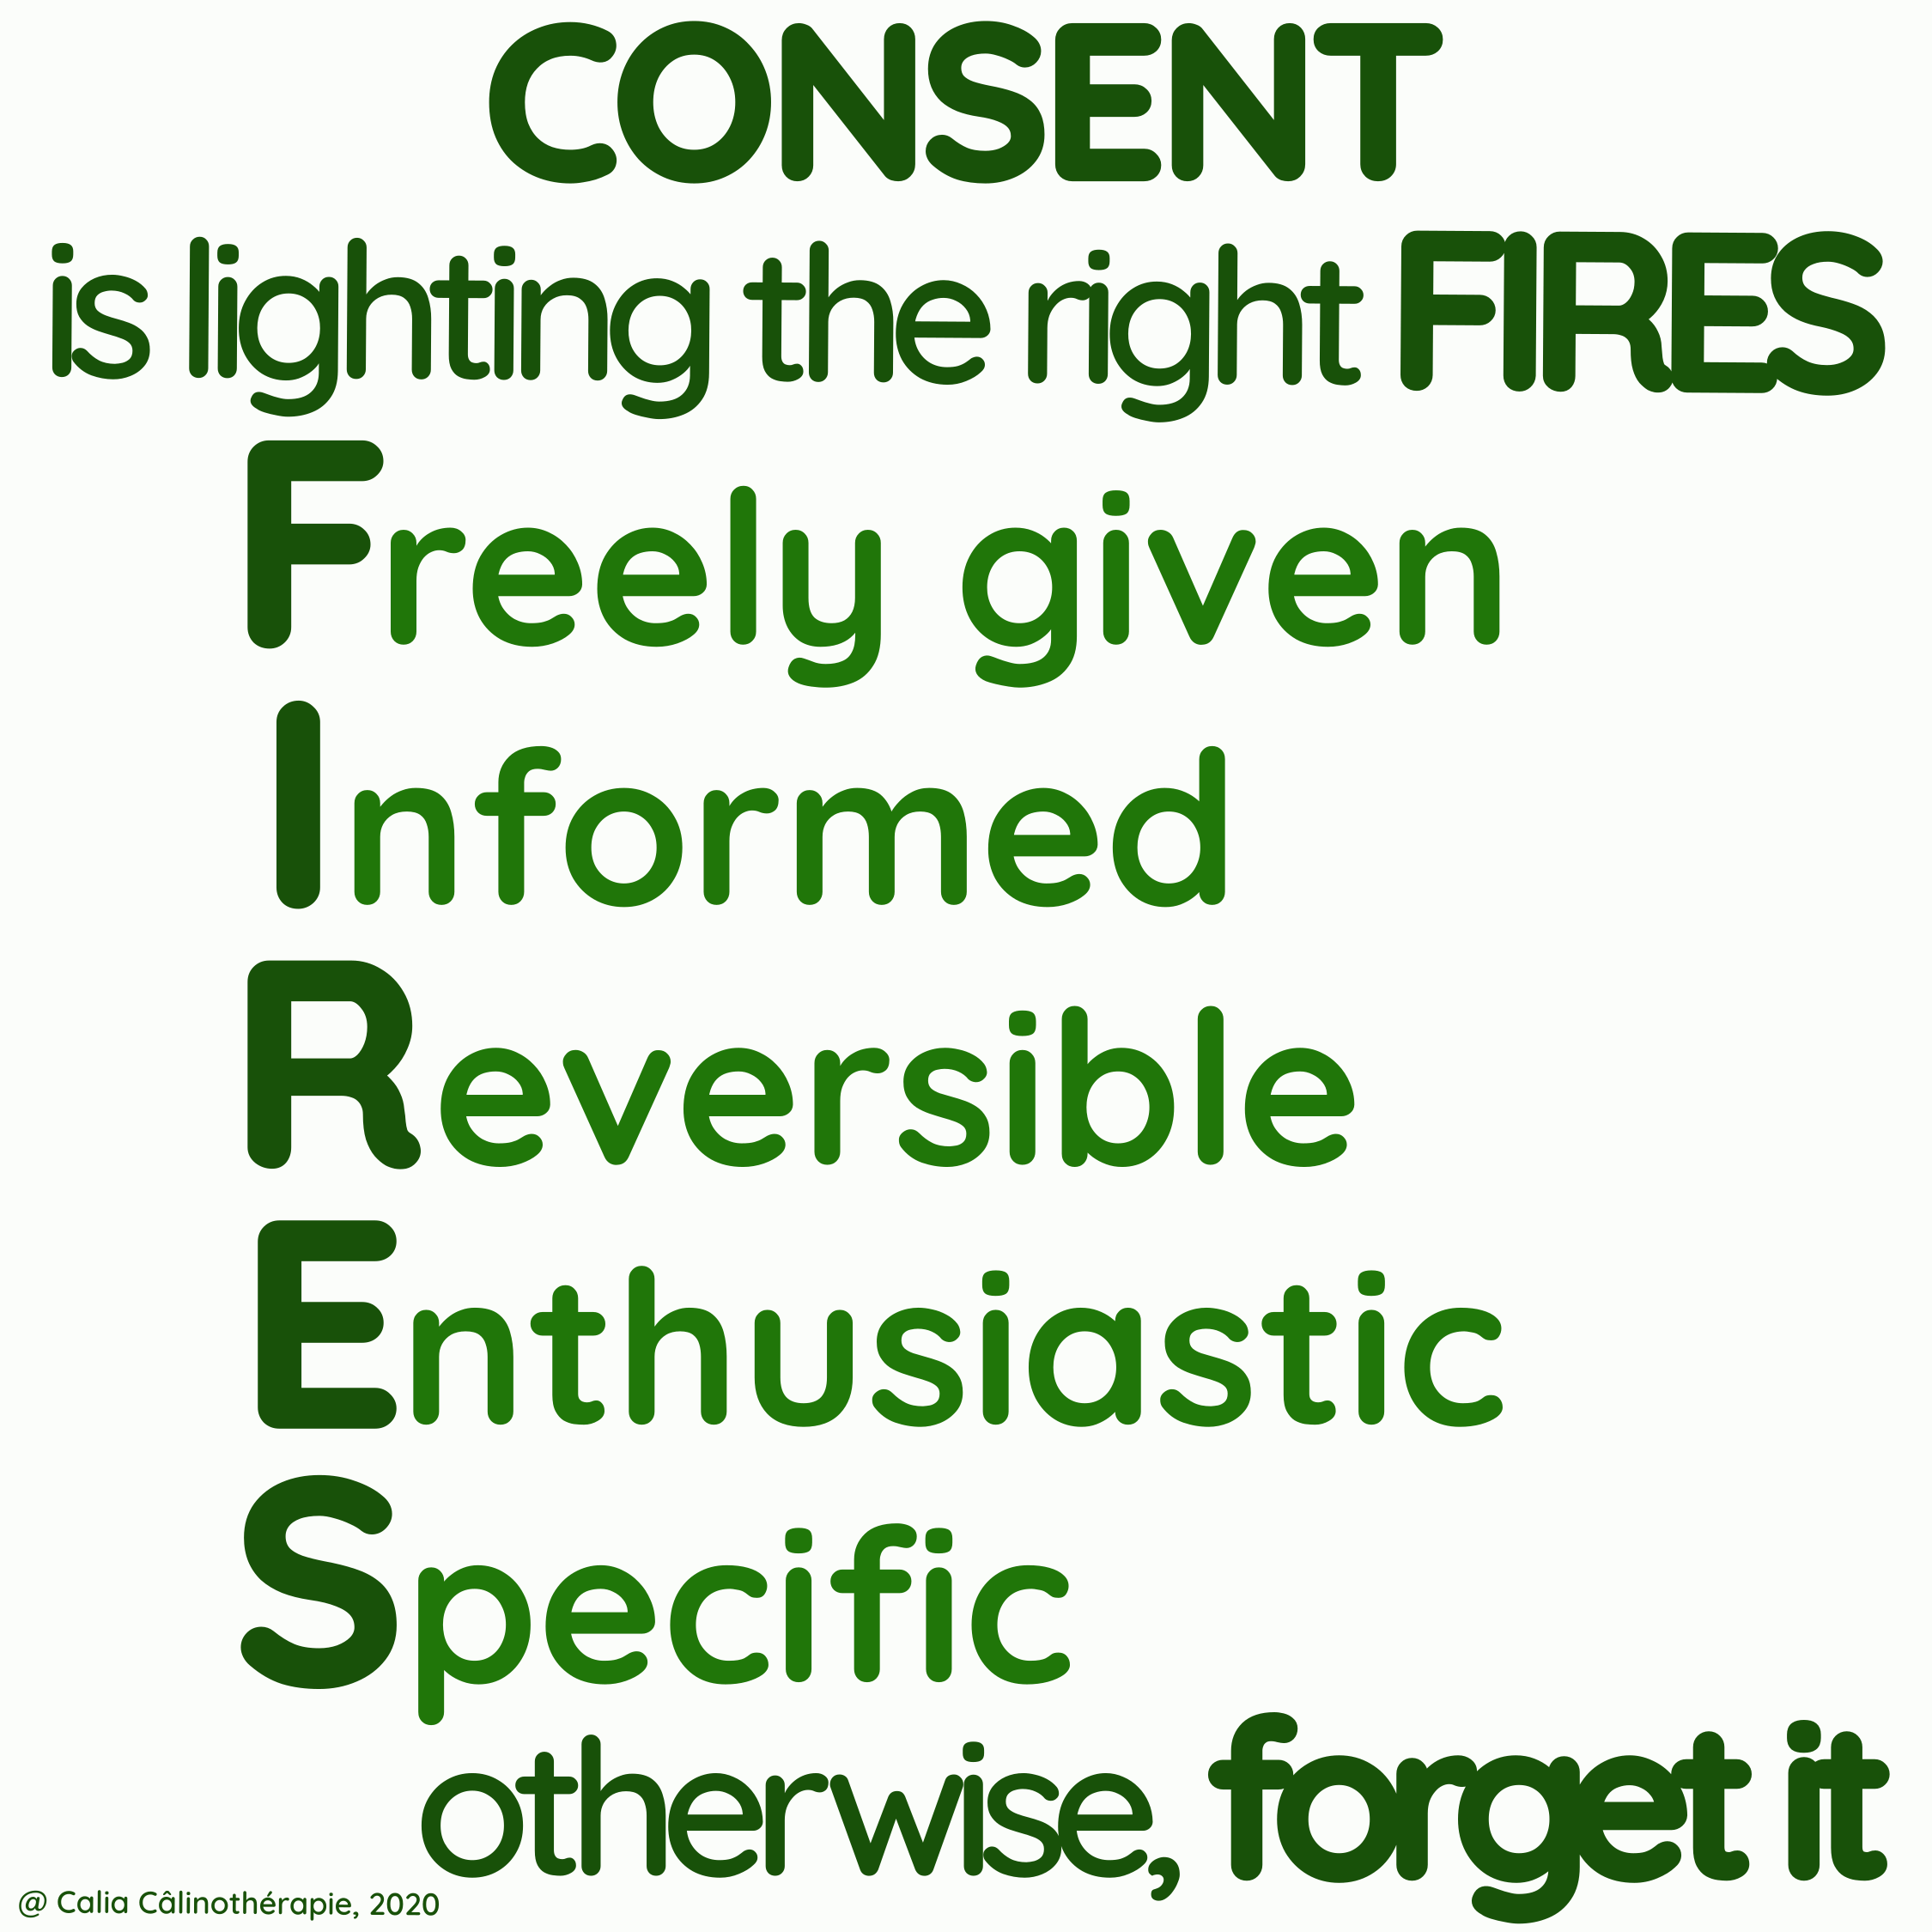 Consent ...make sure you light the right FIRES (Freely given, Informed, Reversible, Enthusiastic, Specific) otherwise, forget it!